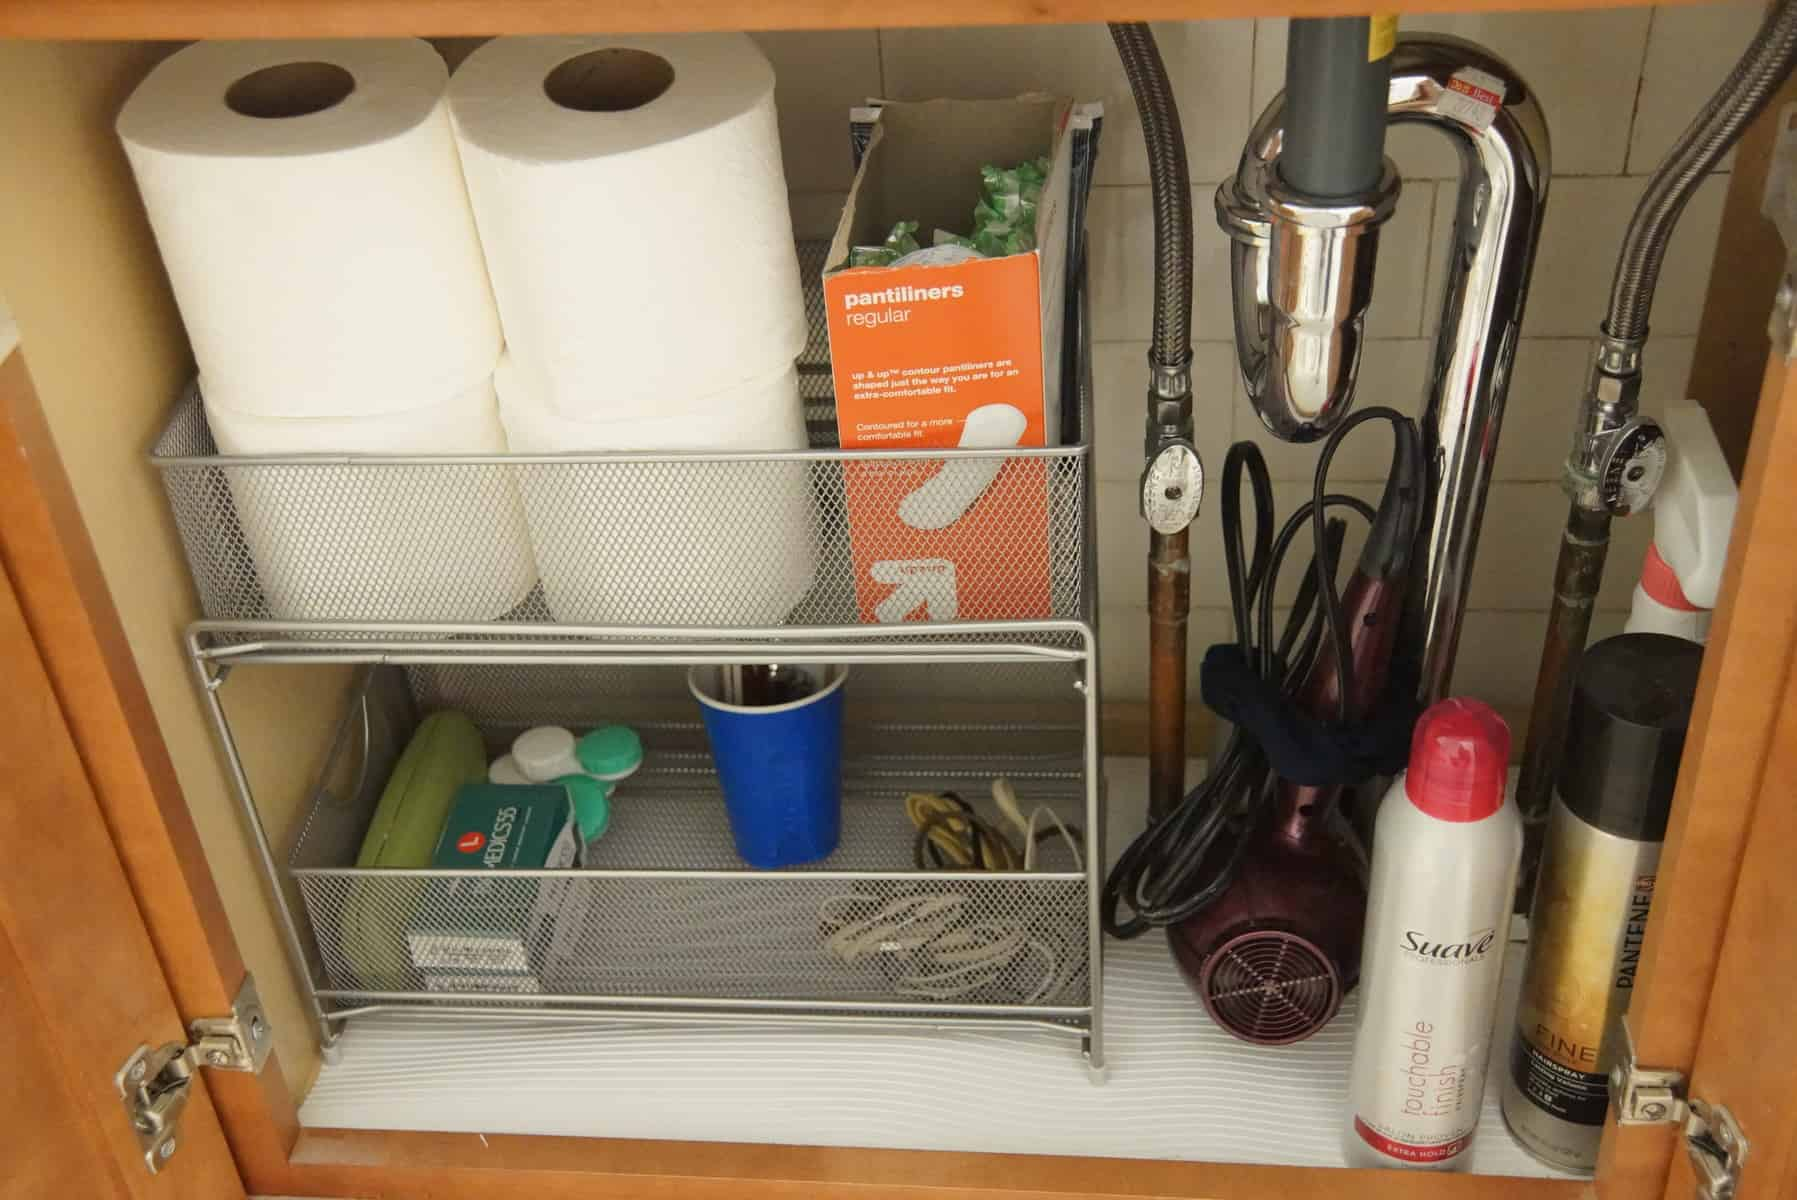 100 Kitchen Under Sink Storage Tension Rod For Hanging Spray Cleaners